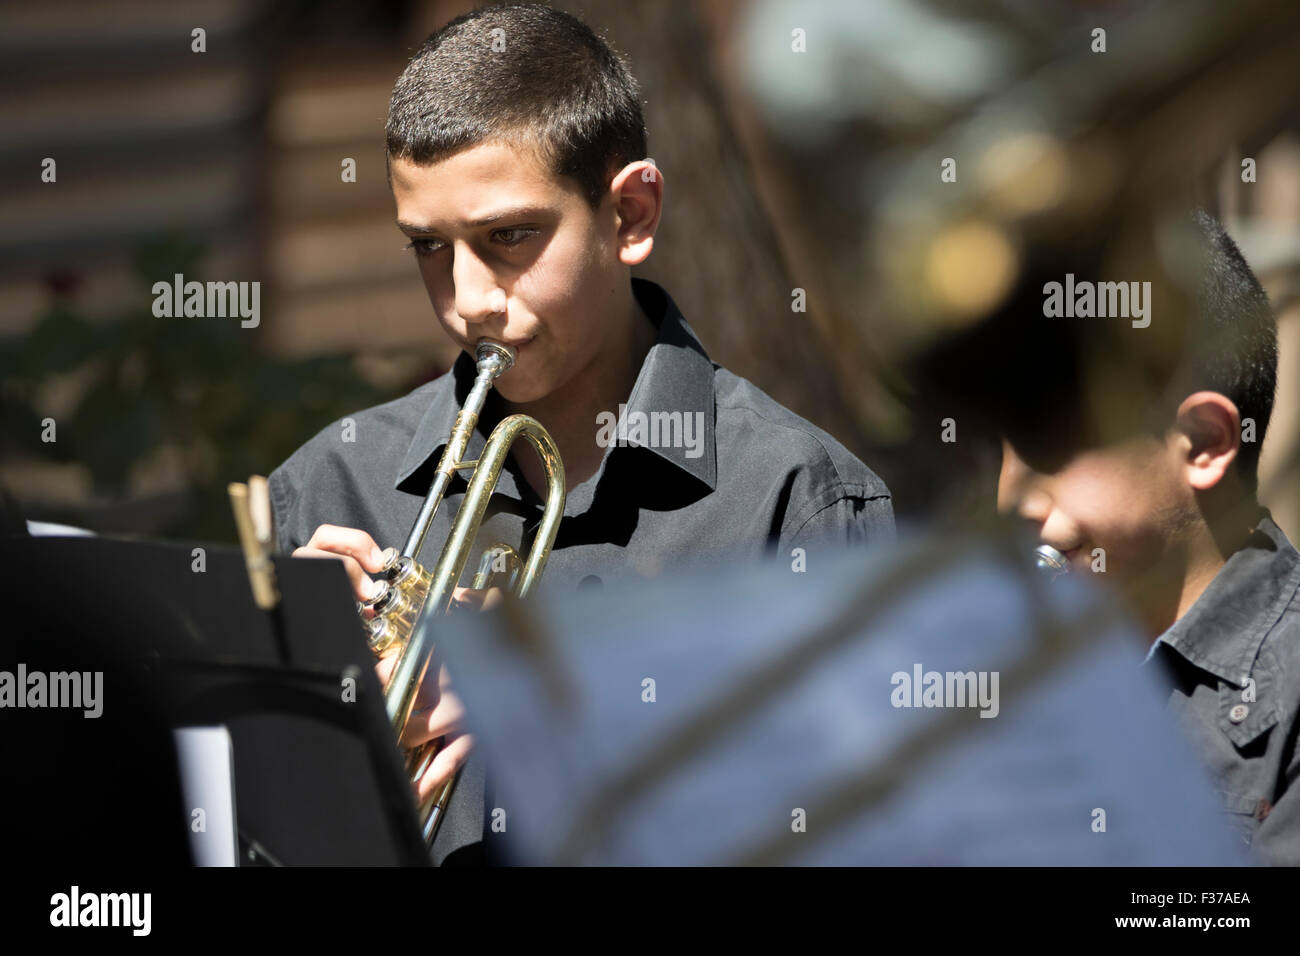 Members of Brass for Peace play in the grounds of Al-Quds University, Palestine to spread messages of peace - Stock Image